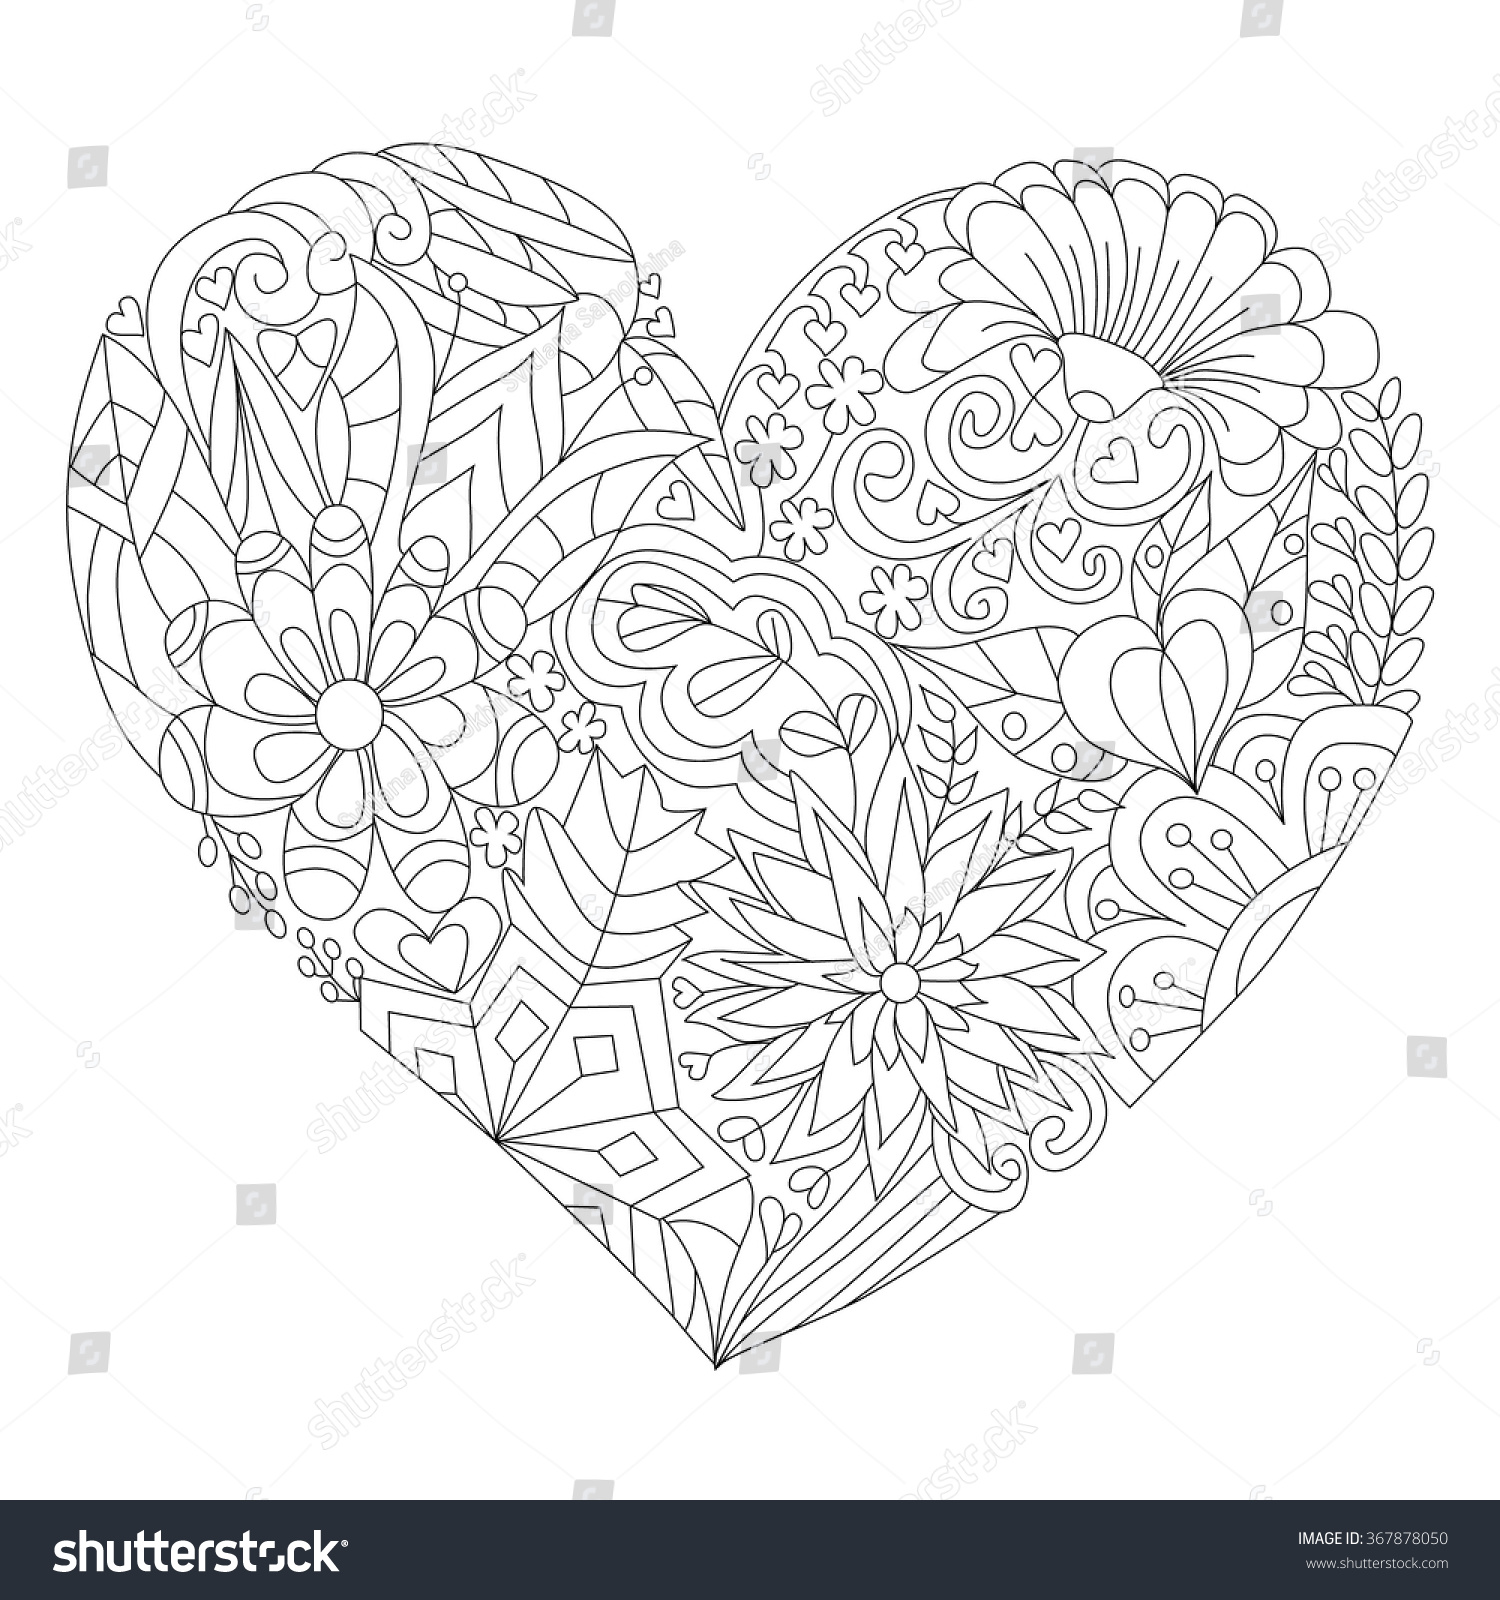 Coloring Book Adult Older Children Coloring Stock Vector (Royalty ...